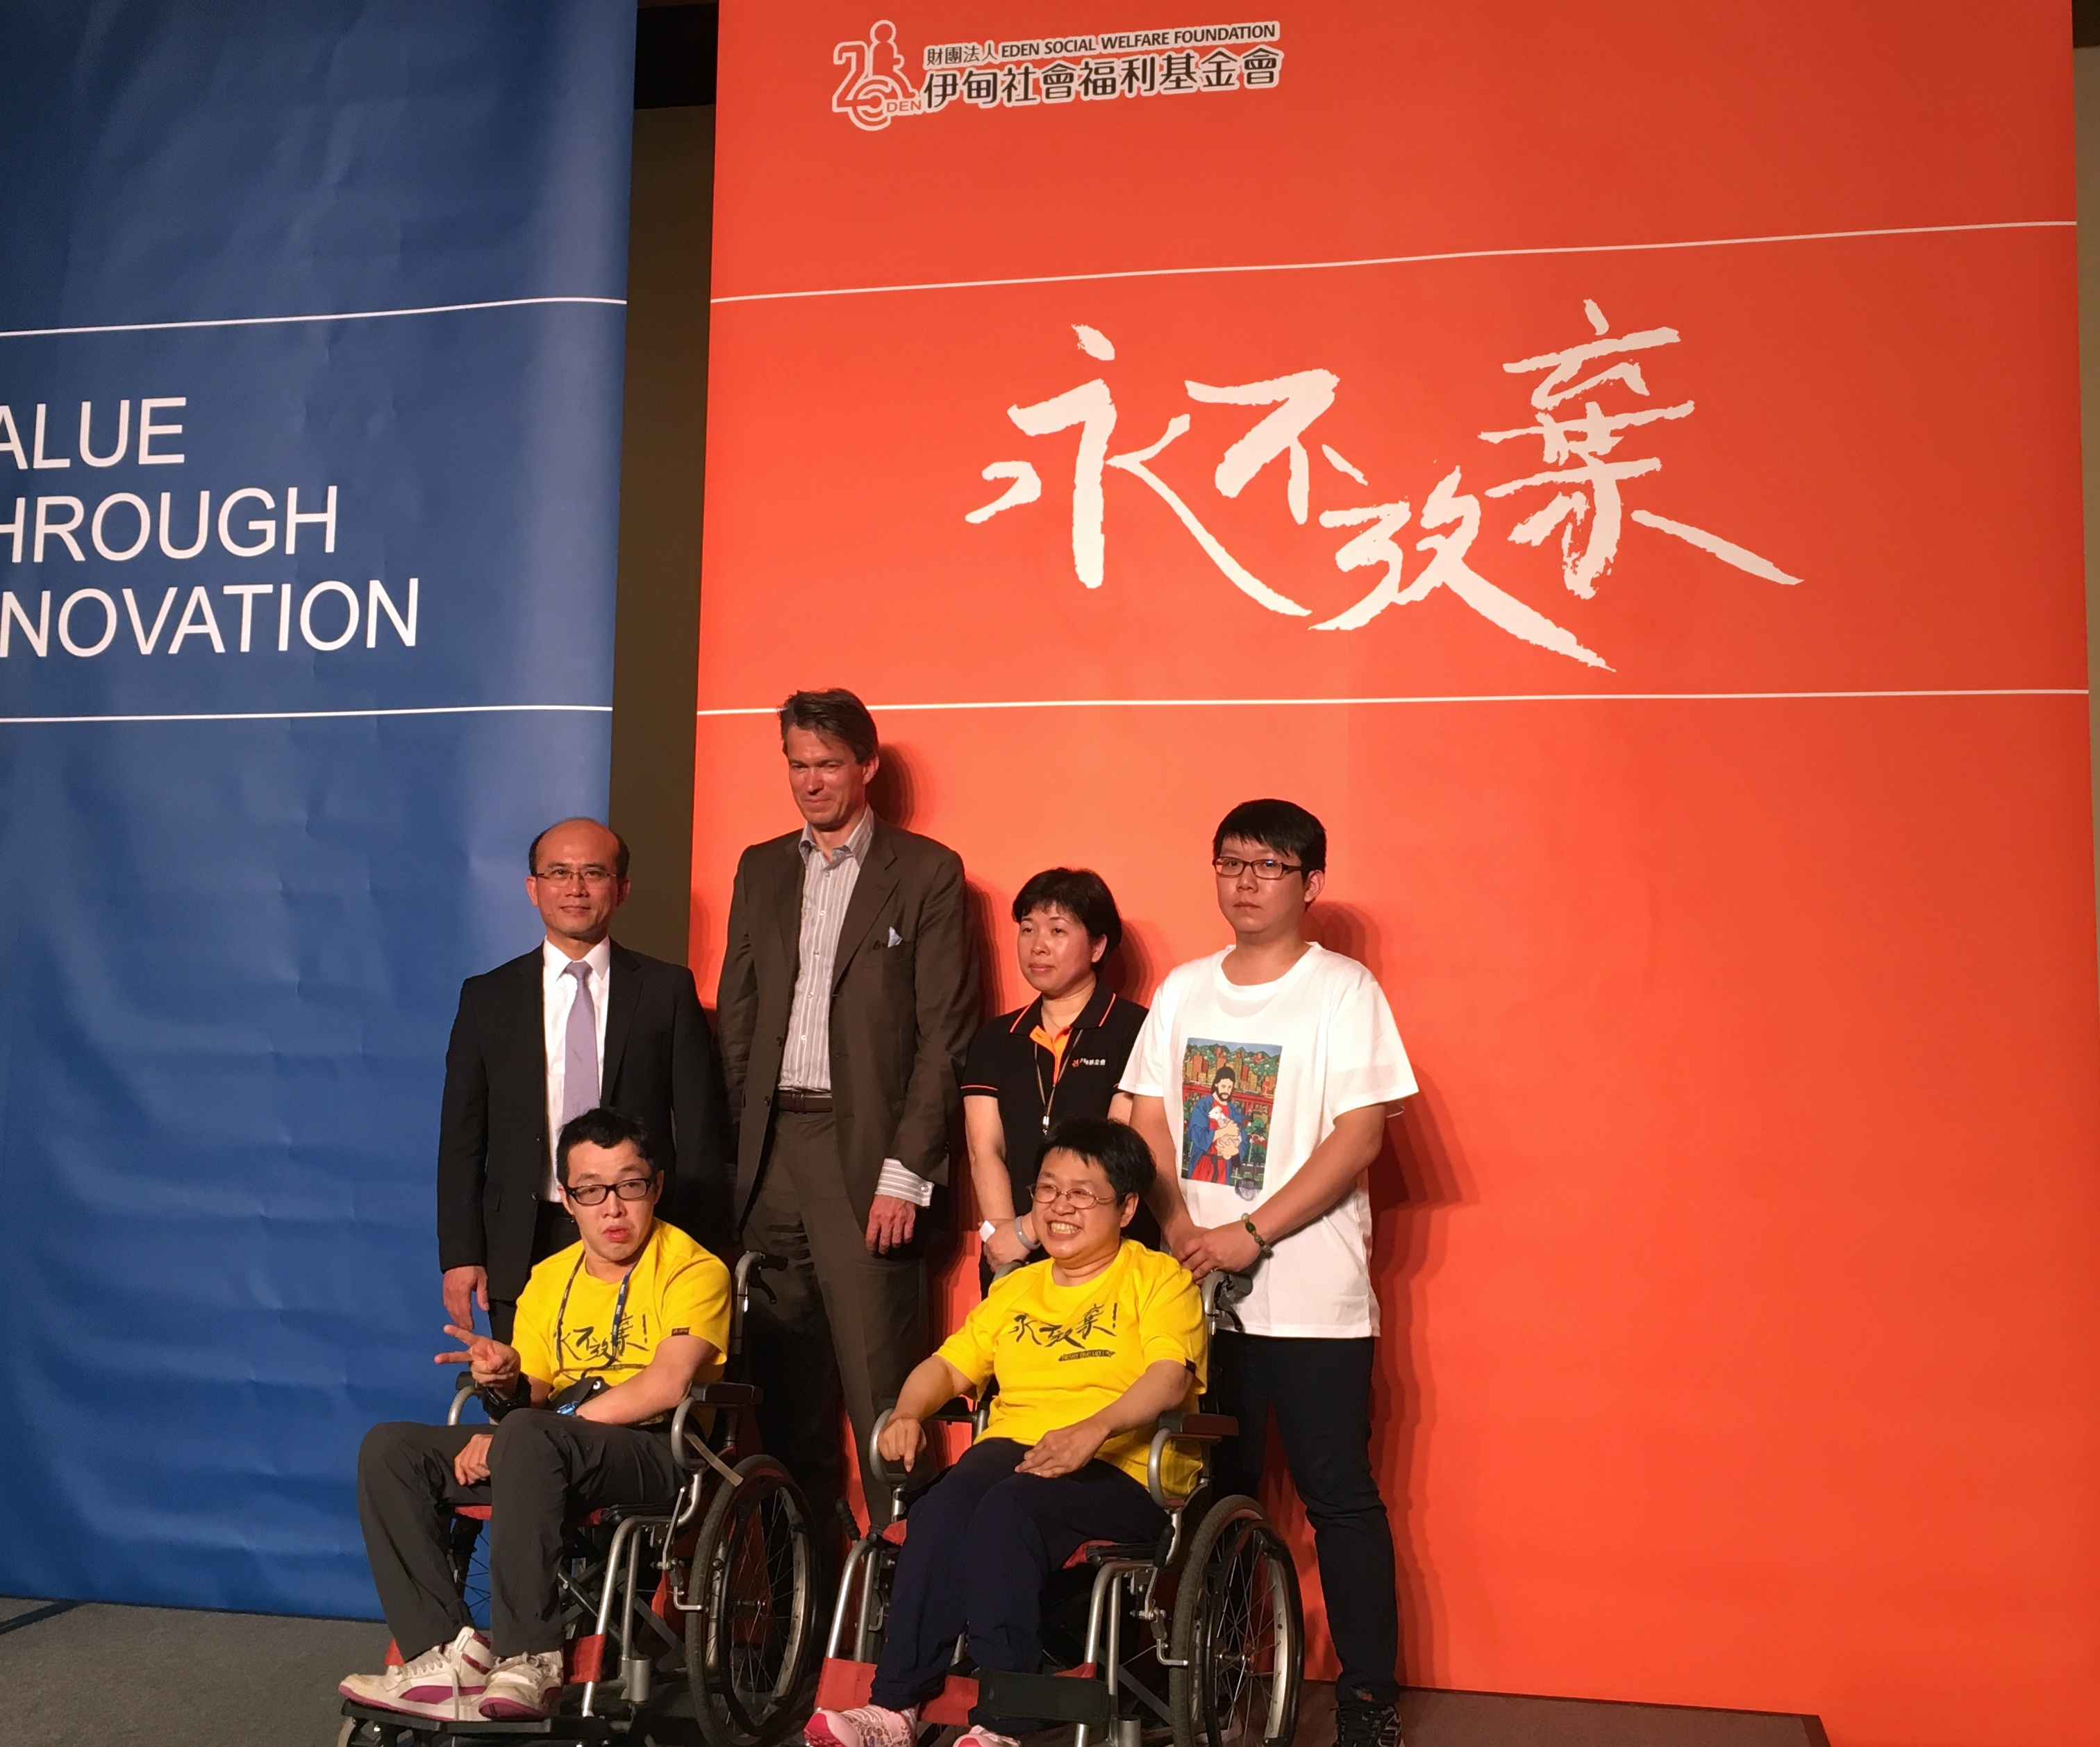 General Manager of Boehringer-Ingelheim Taiwan and other global shareholders to encourage Eden's artists with disabilities